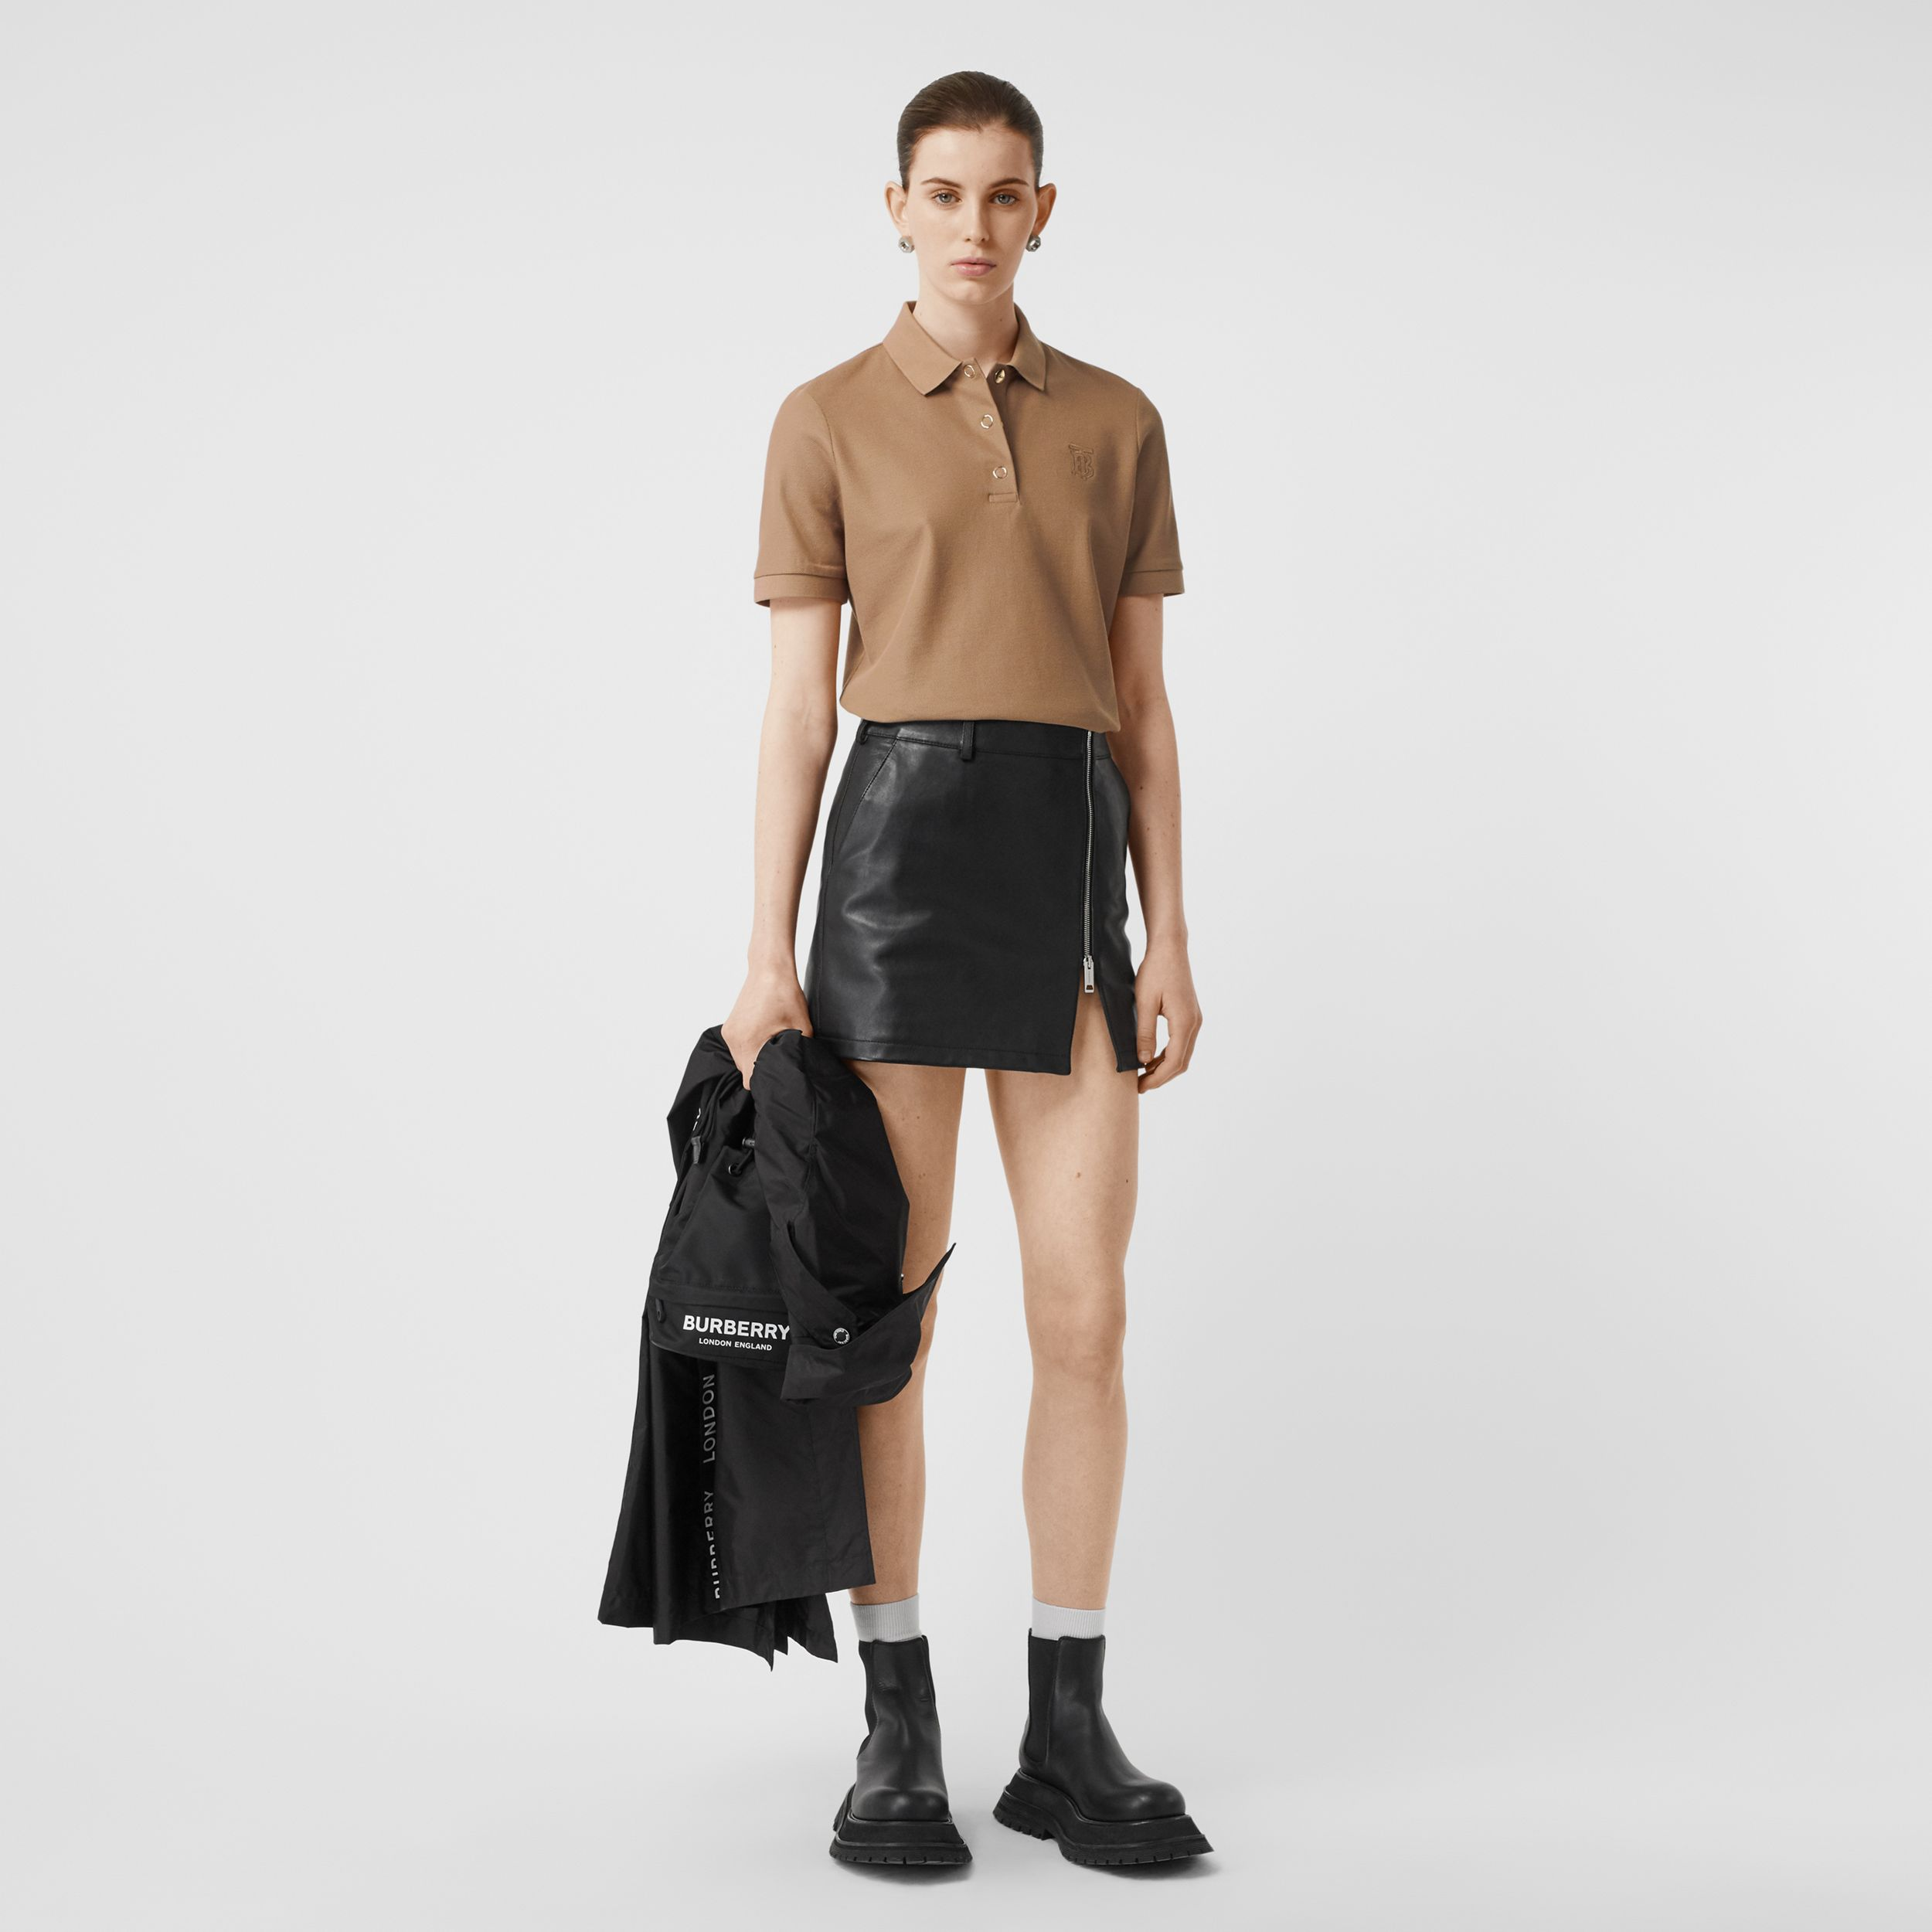 Monogram Motif Cotton Piqué Polo Shirt in Camel - Women | Burberry Singapore - 1